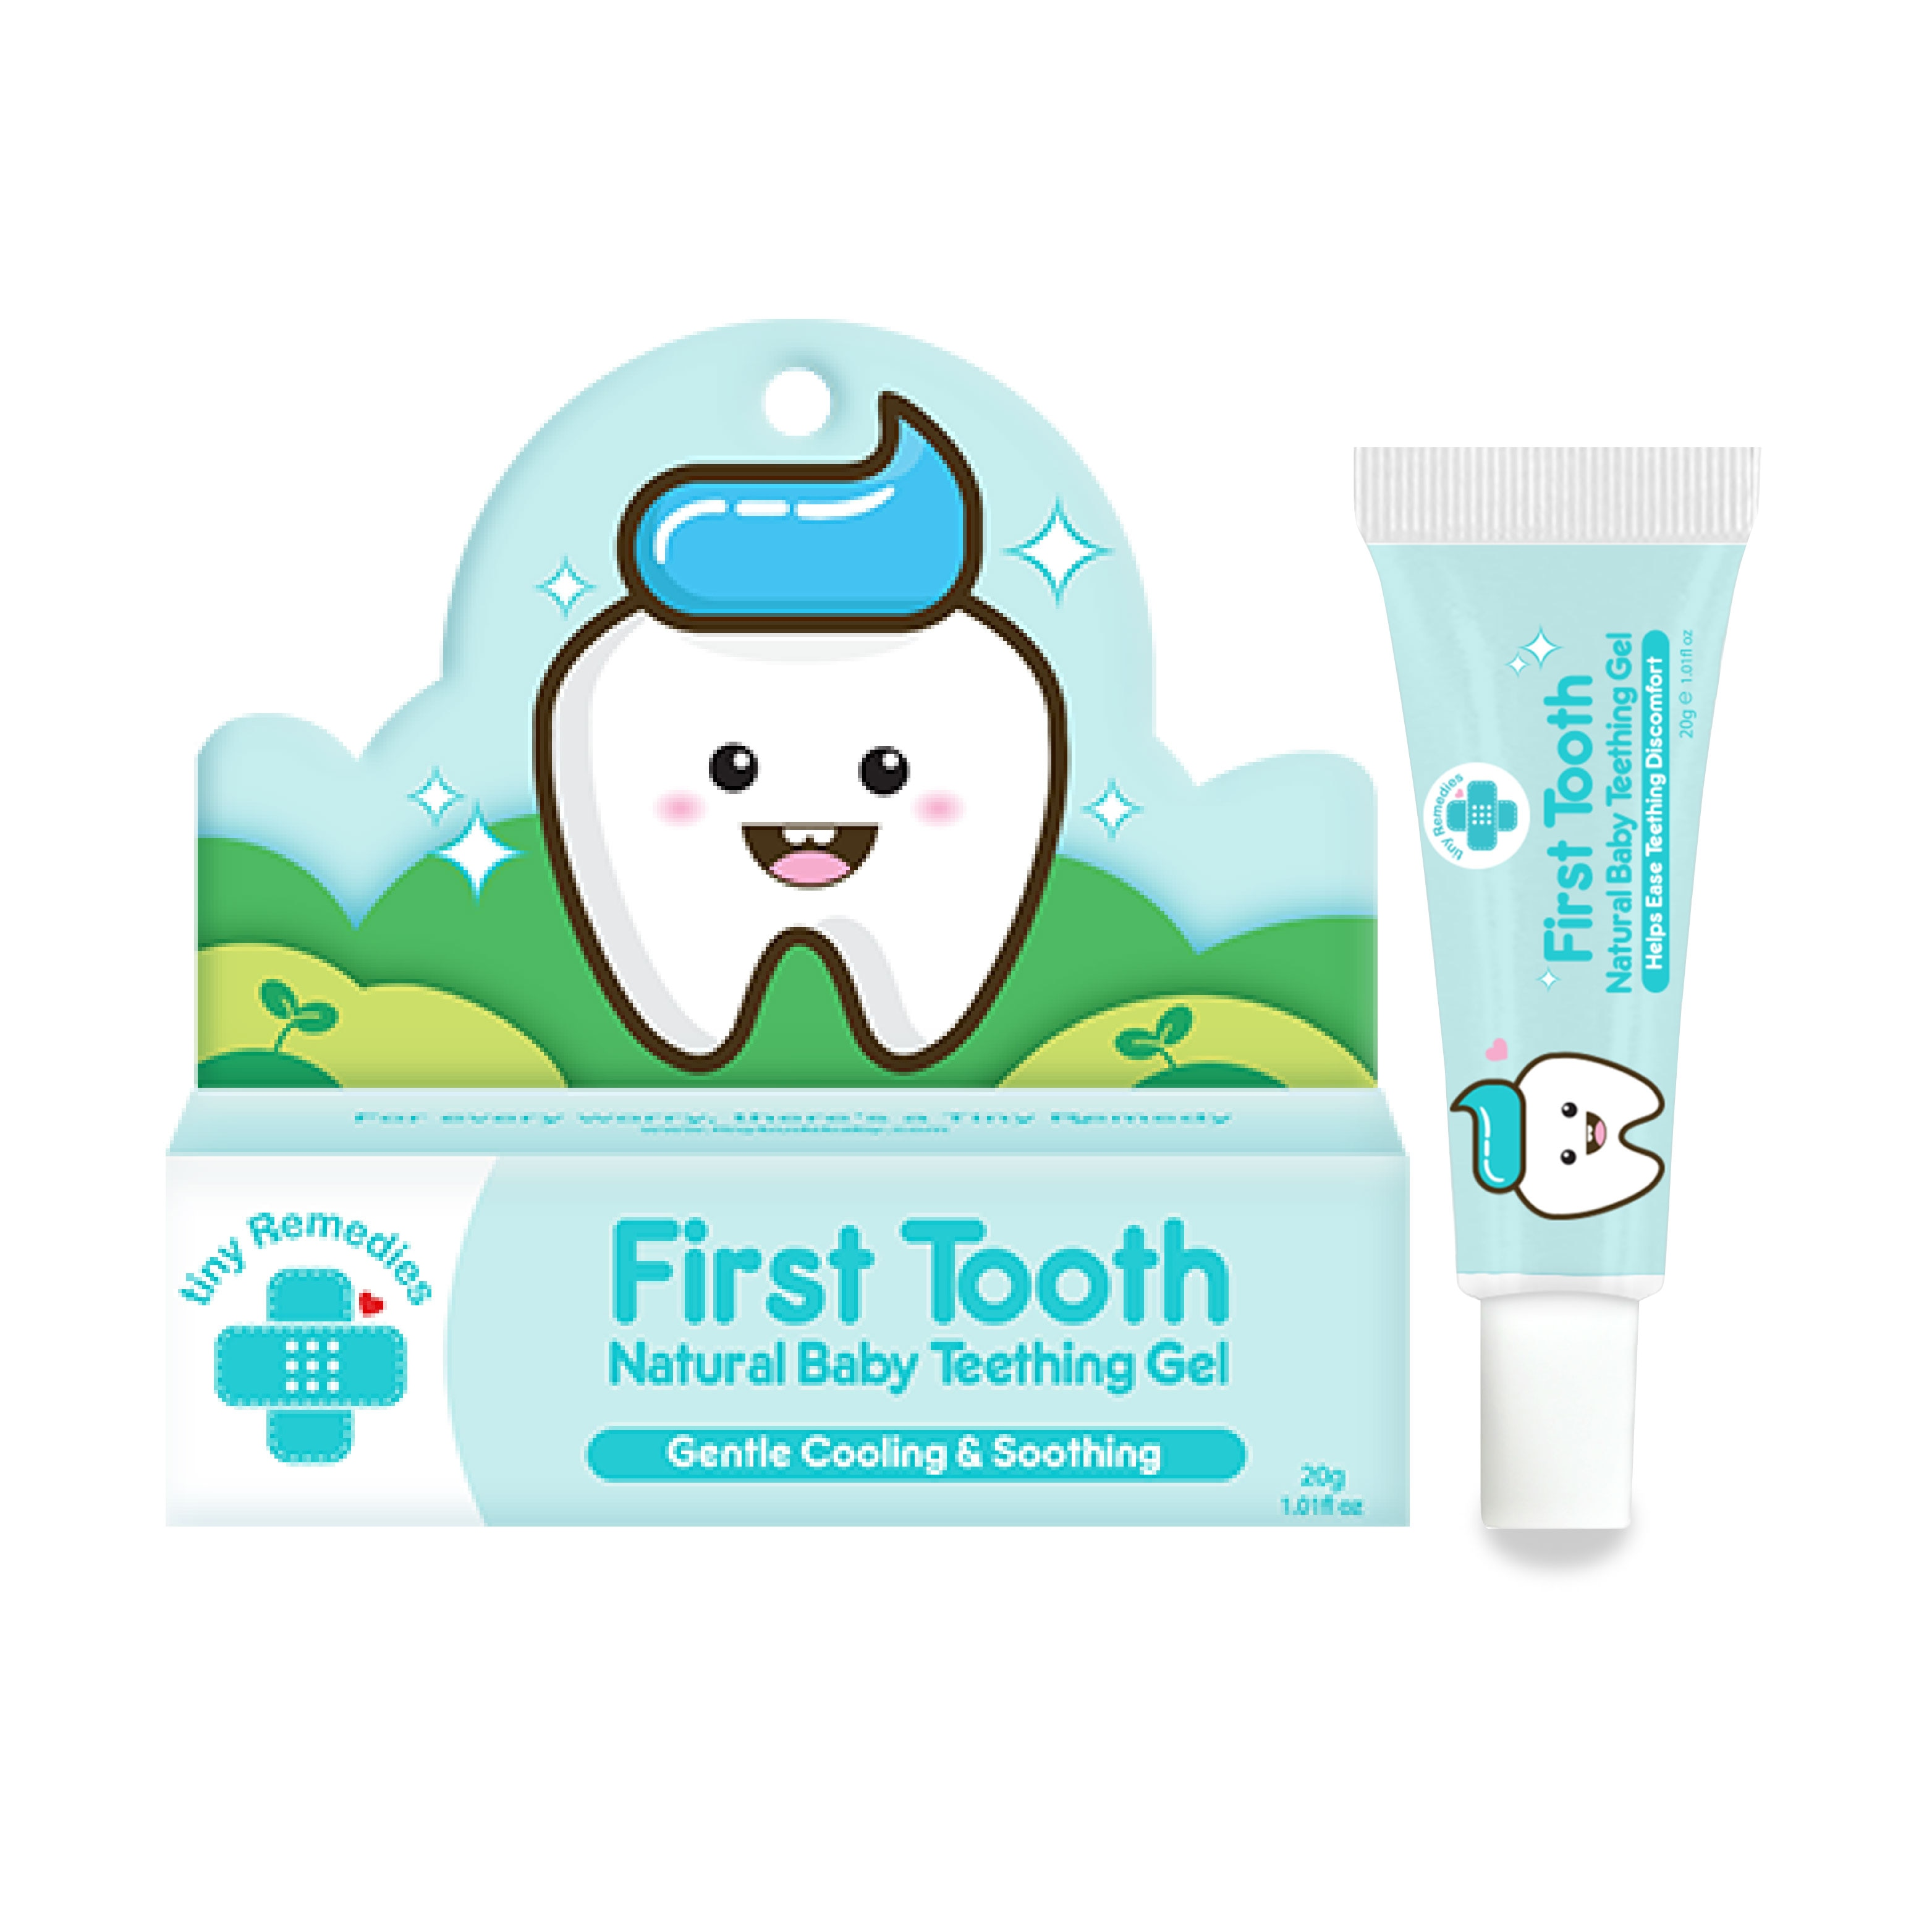 Remedies First Tooth Natural Baby Teething Gel 20g